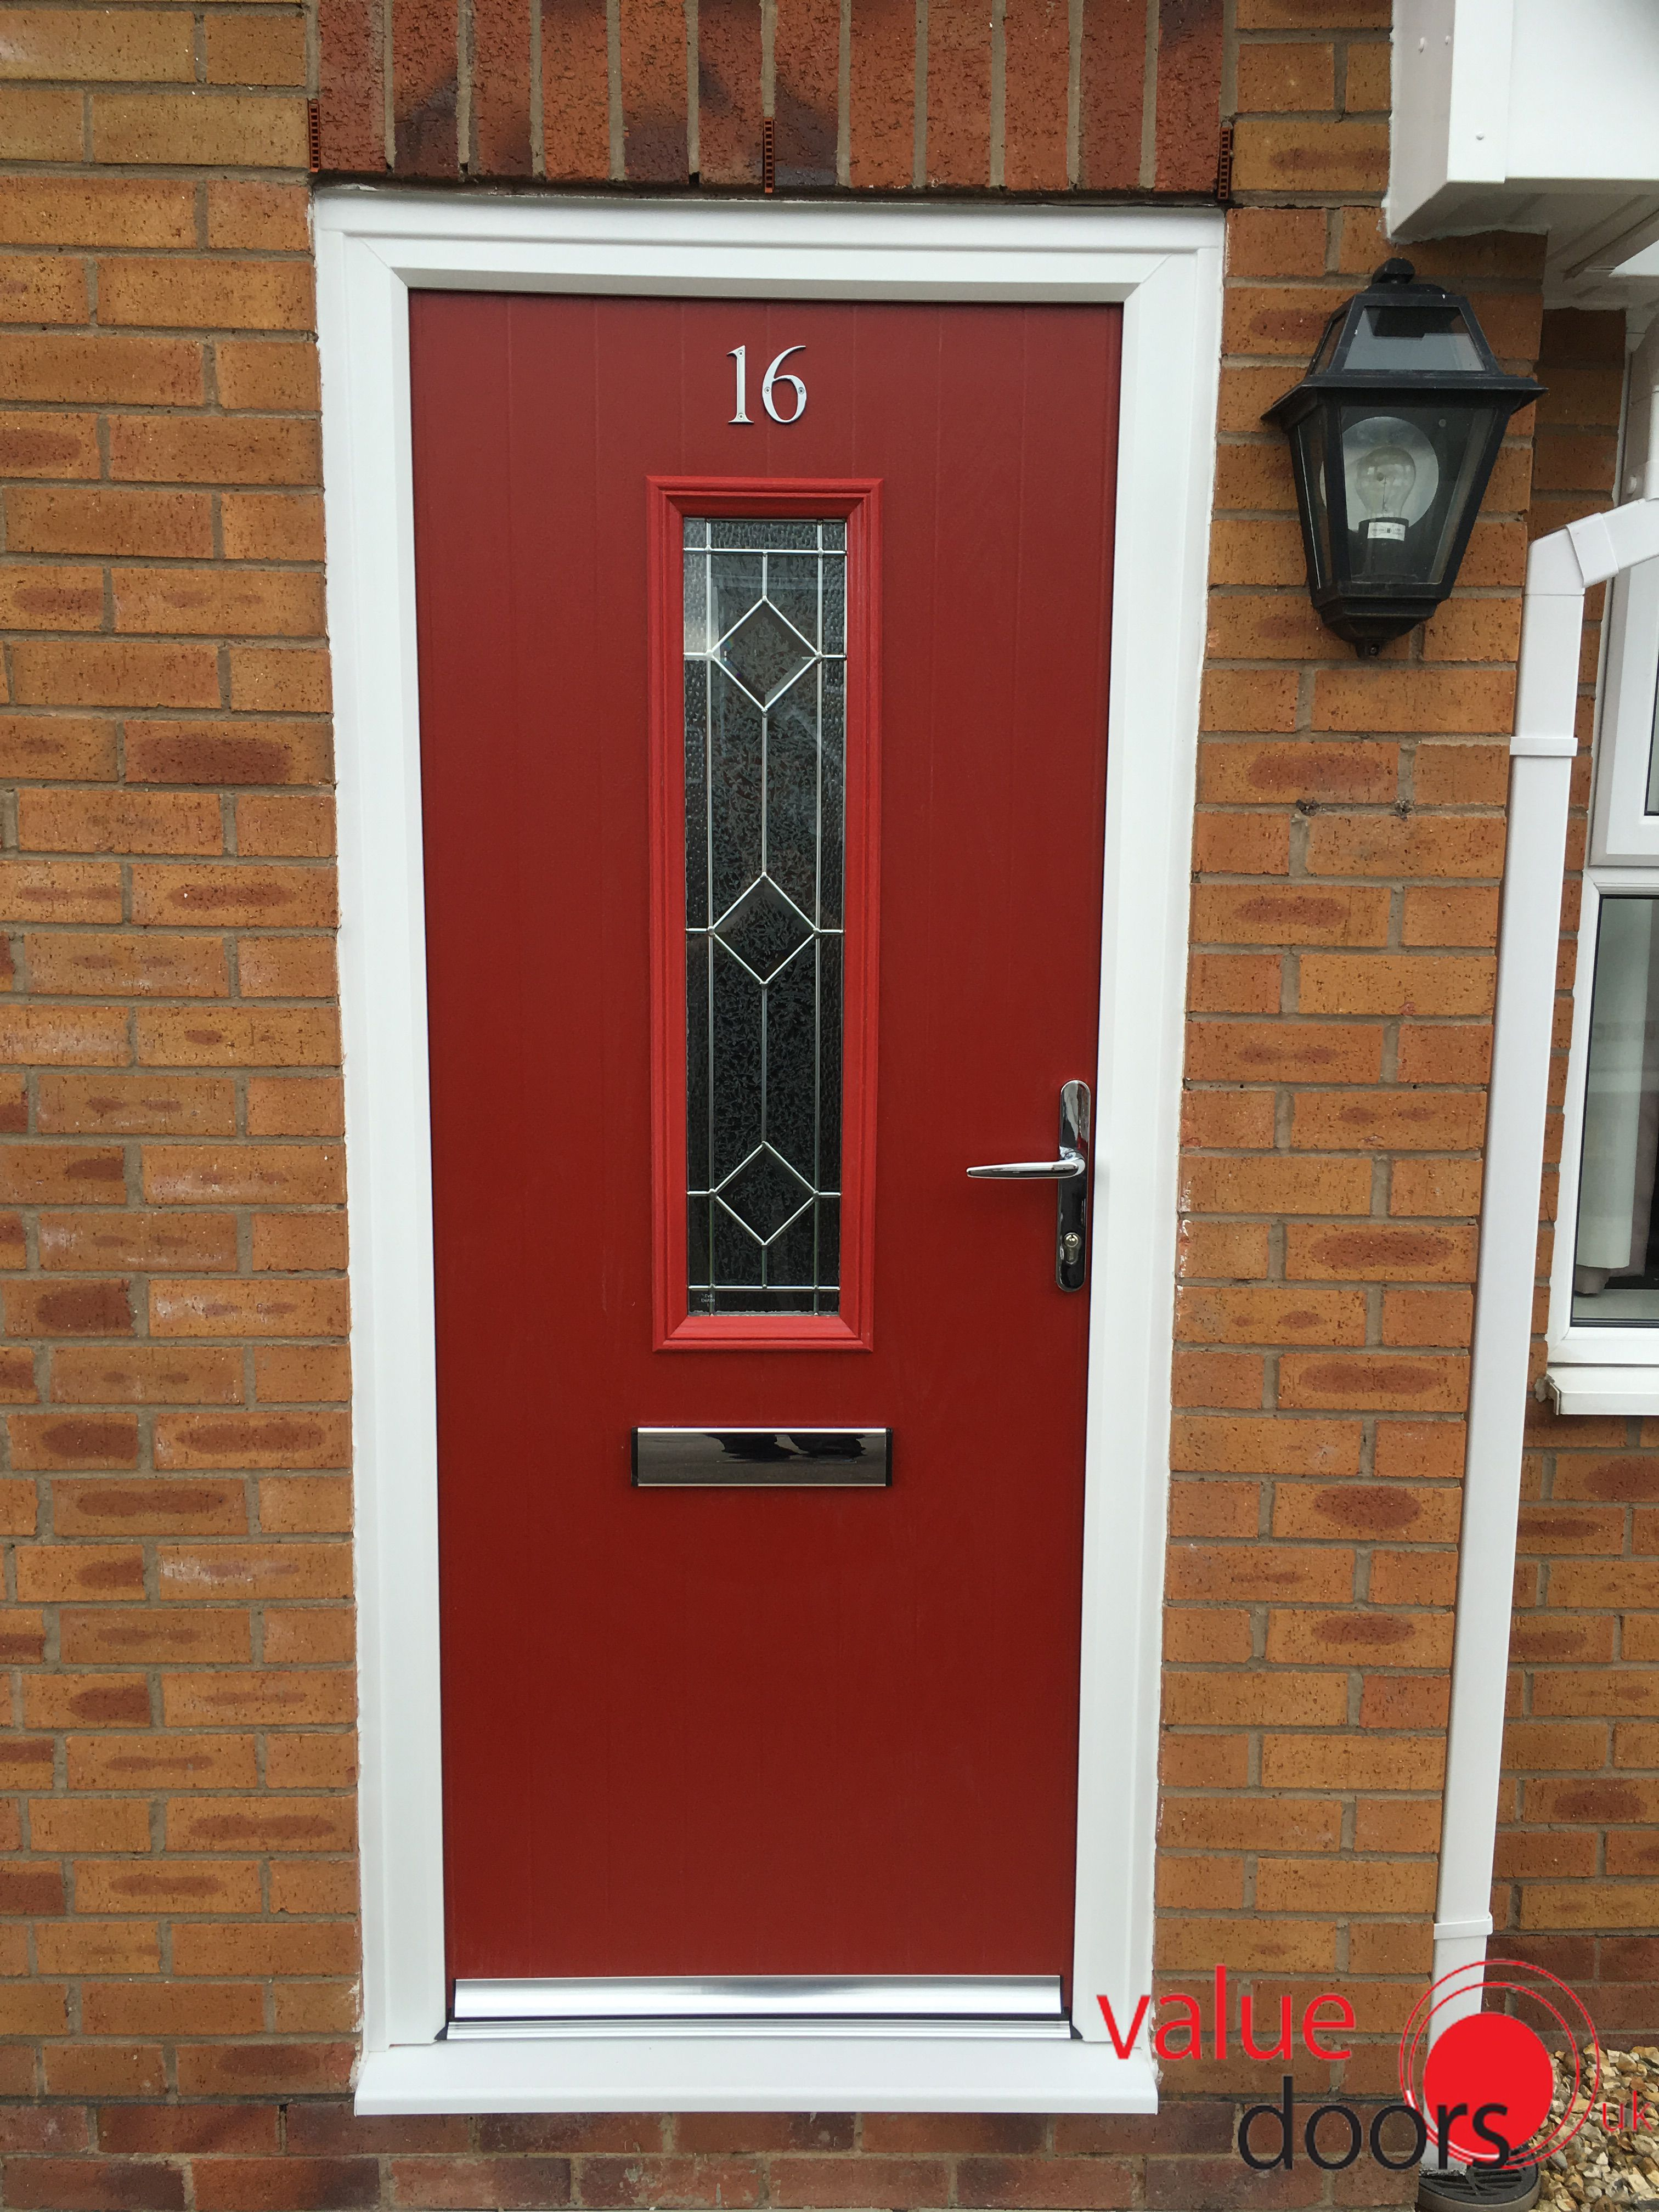 The Sheffield Composite Door in Red with Simplicity. Value Doors UK offer a range of & The Sheffield Composite Door in Red with Simplicity. Value Doors ... pezcame.com